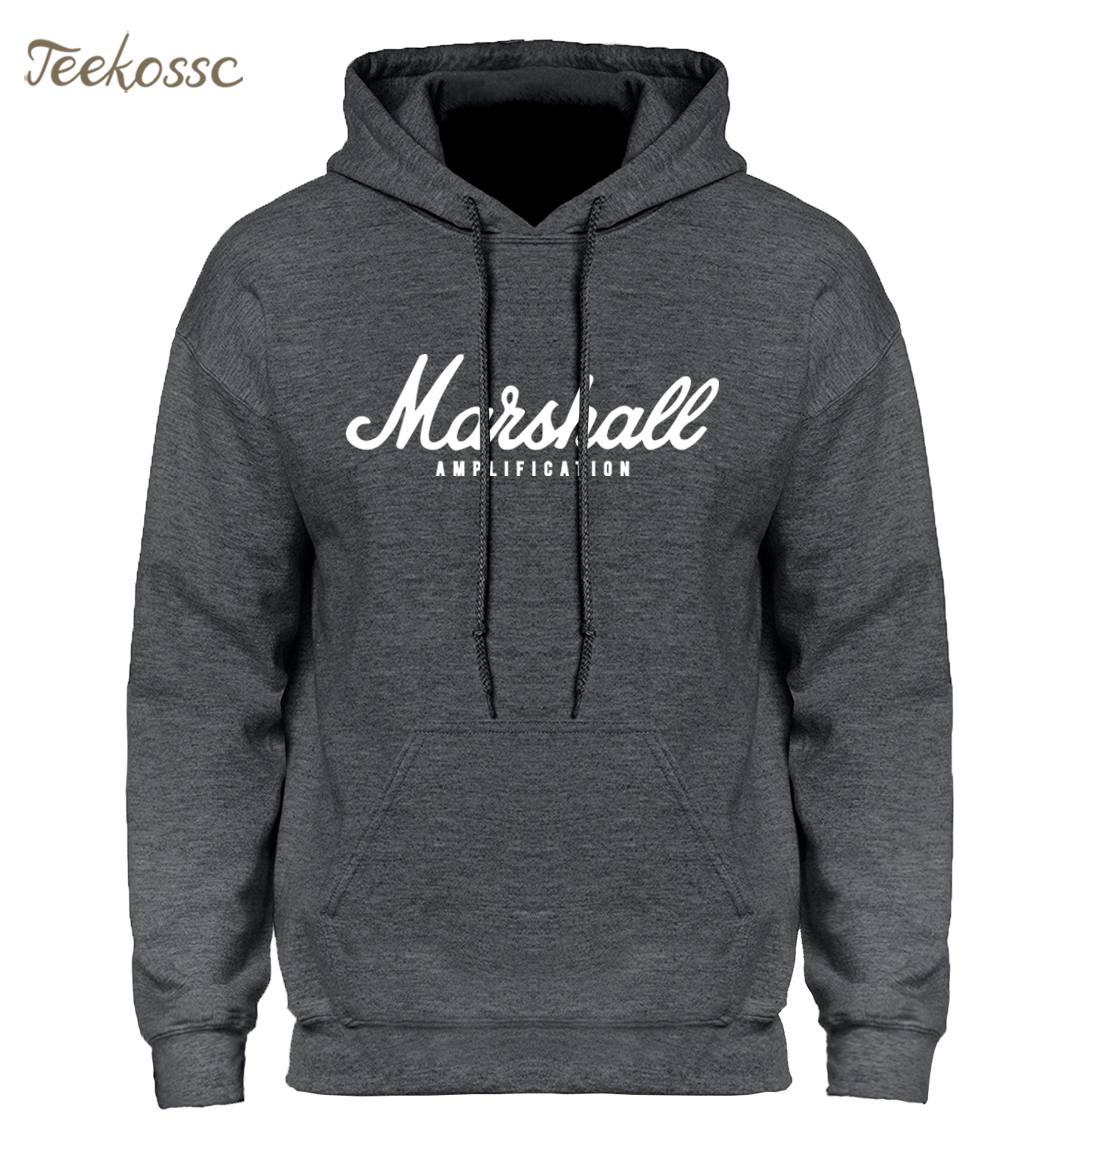 Marshall Hoodie Men Amplification Hoodies Mens Loose Fit Hooded Sweatshirts 2018 Winter Autumn Black White Print Hoody